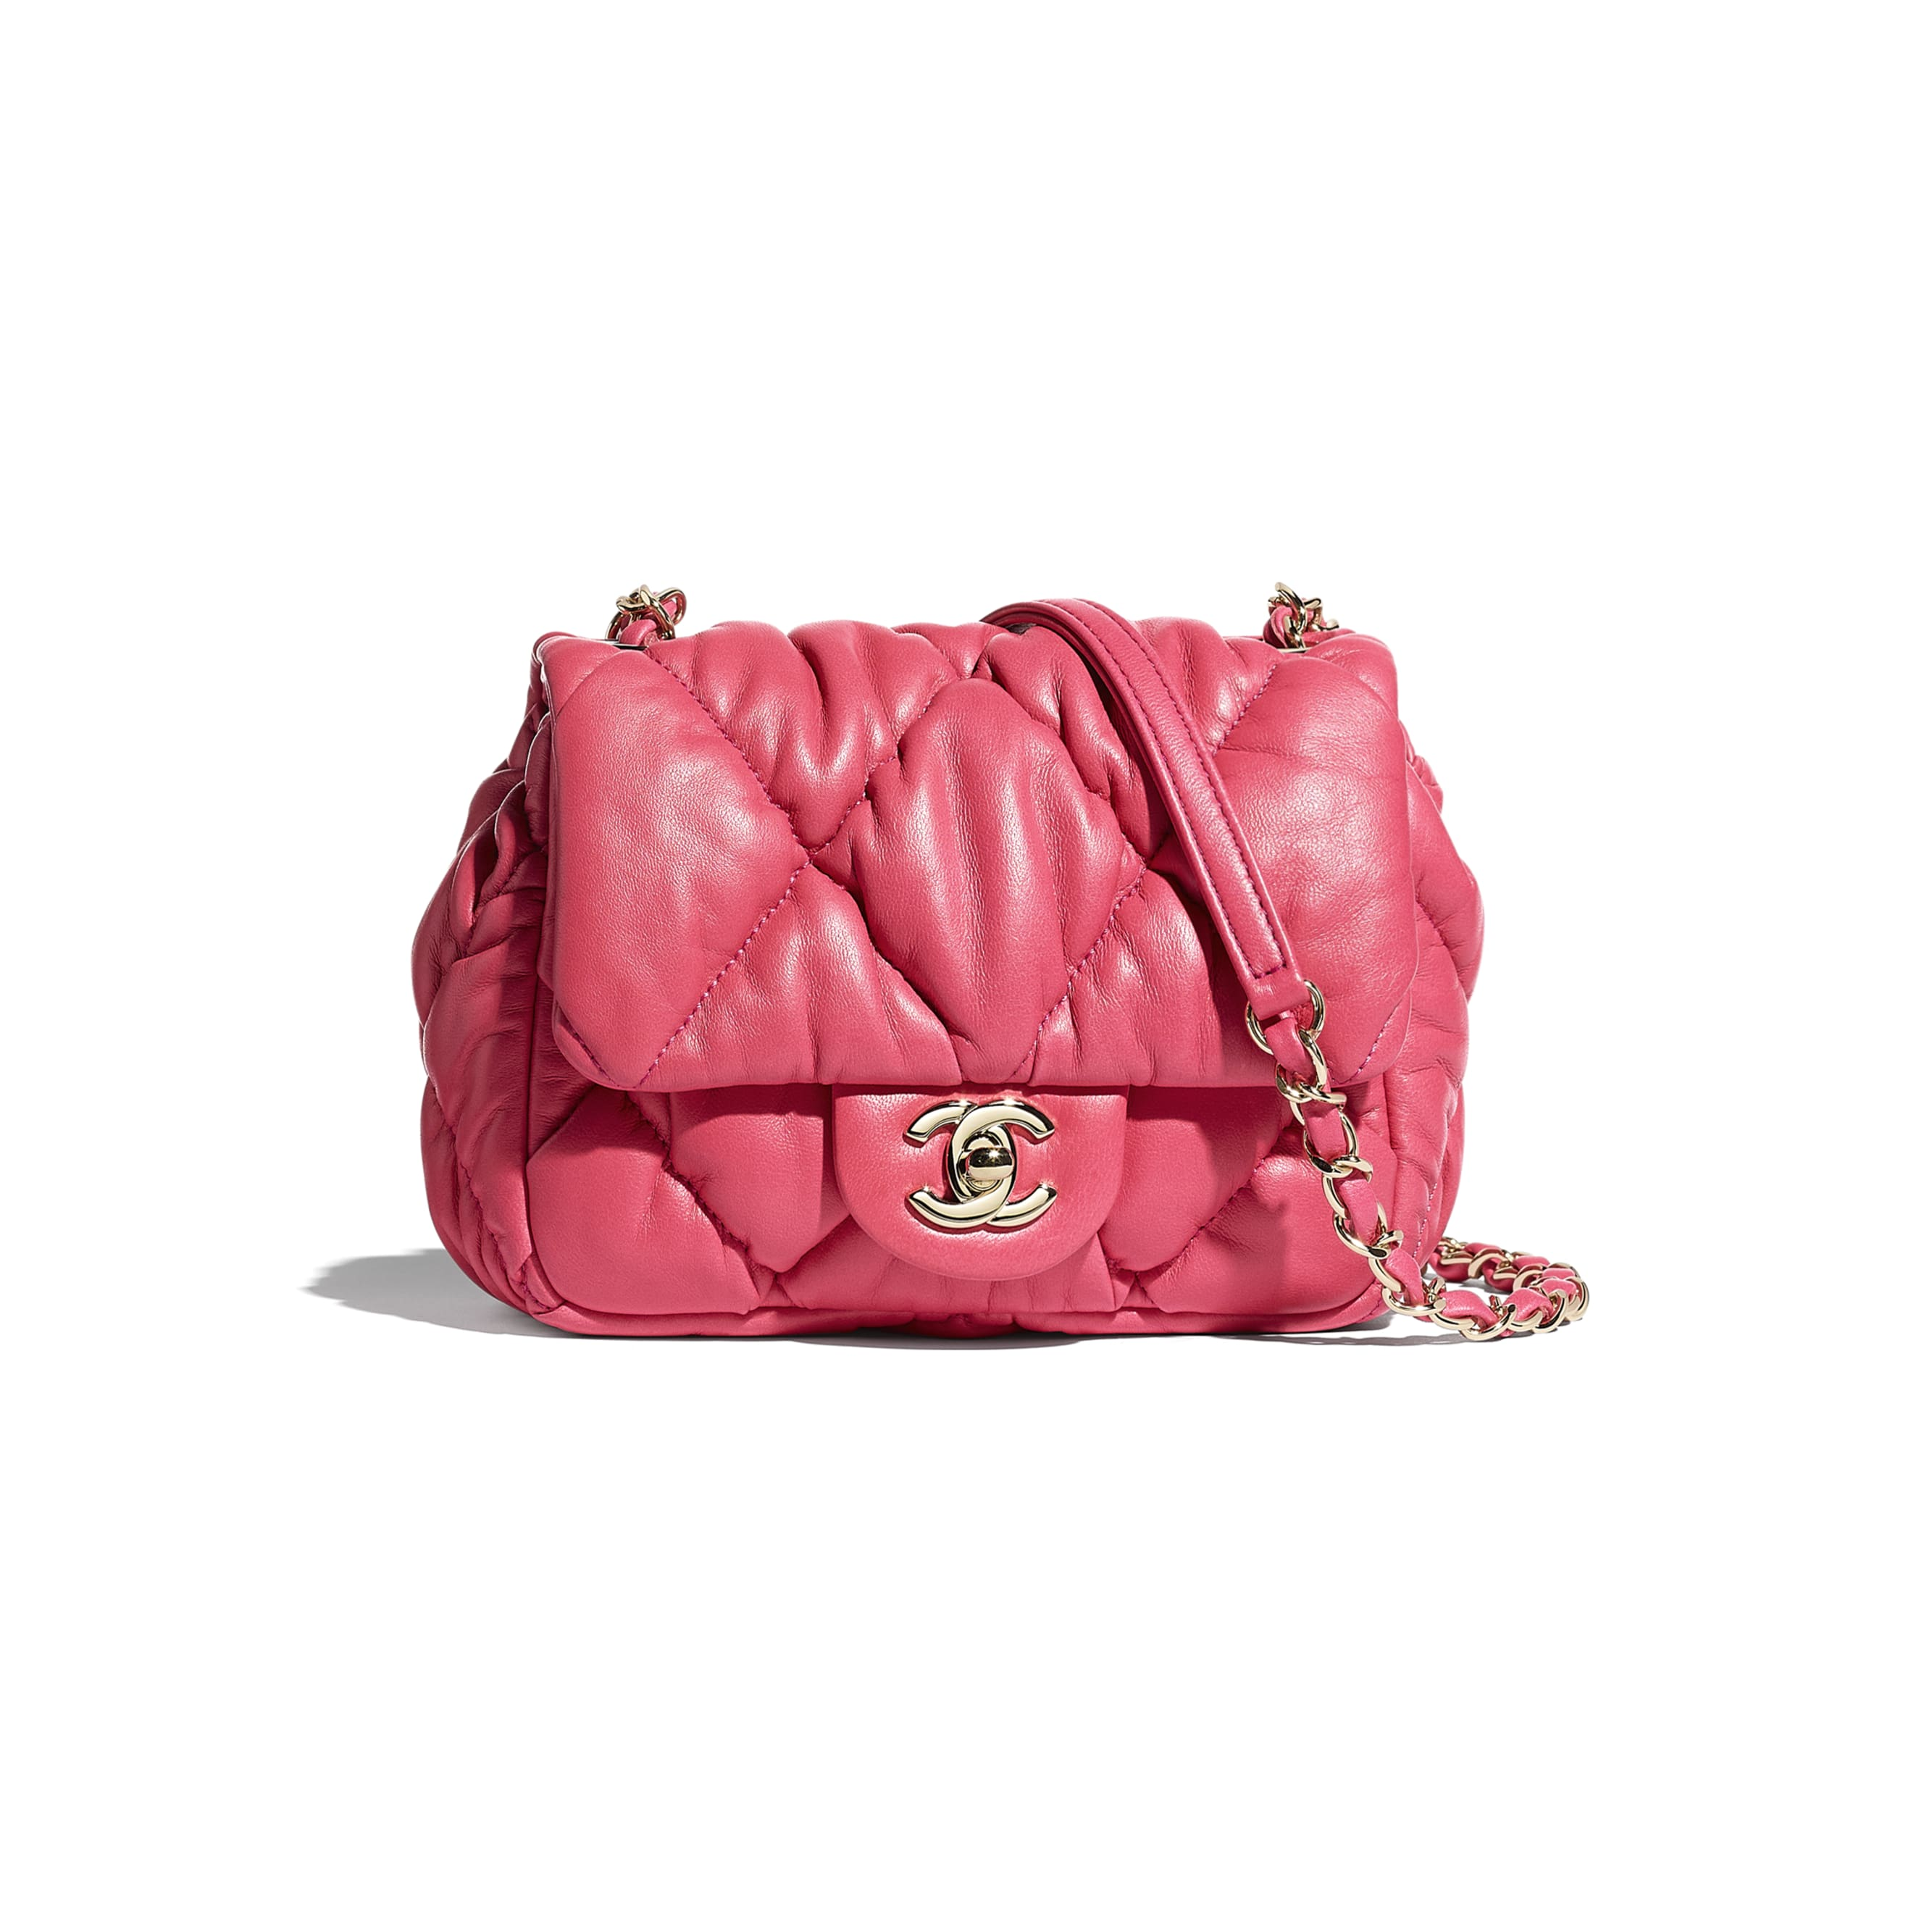 Small Flap Bag - Pink - Calfskin & Gold-Tone Metal - CHANEL - Default view - see standard sized version